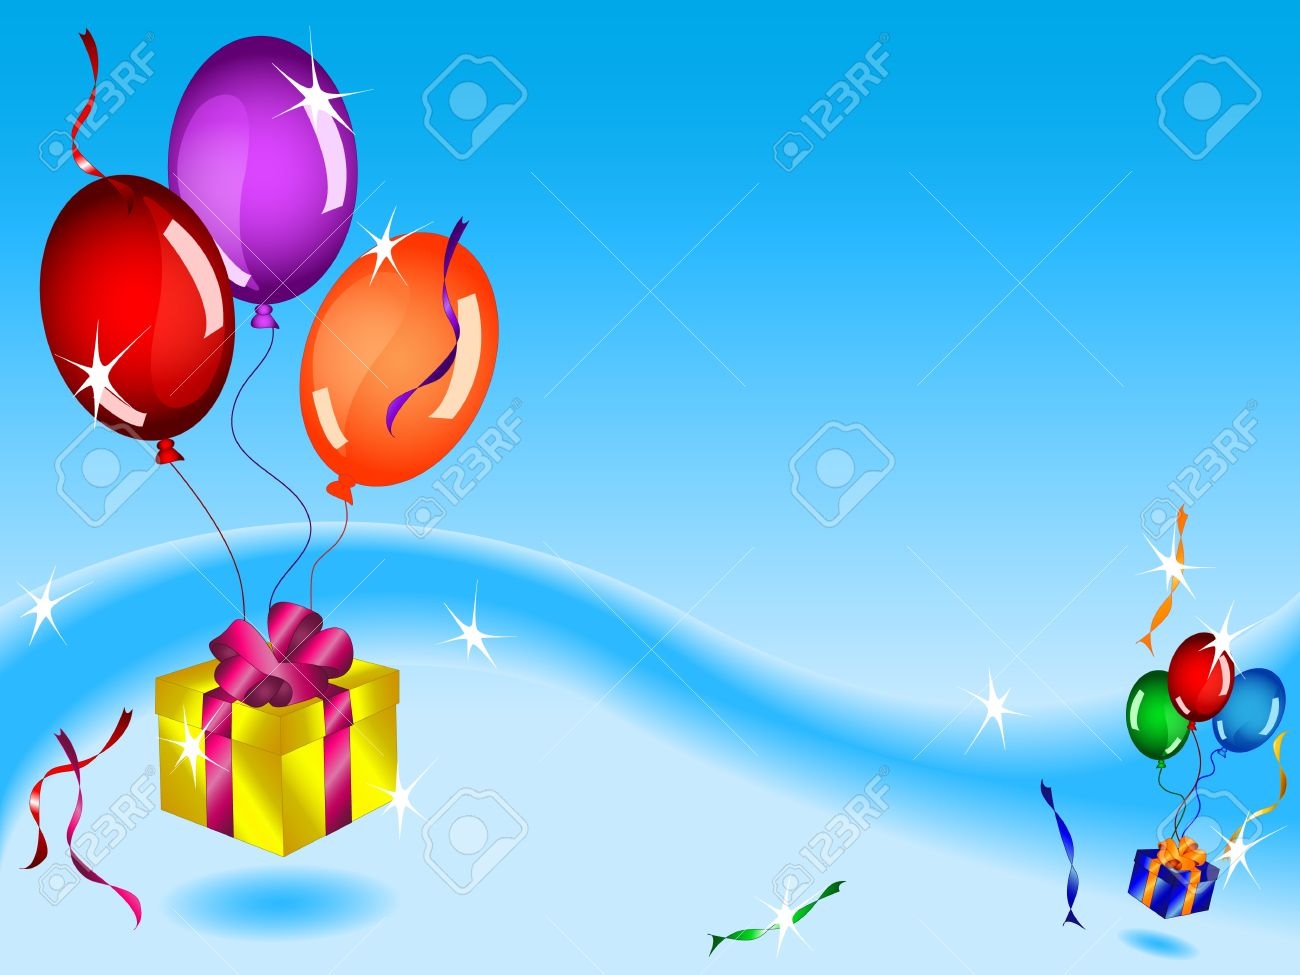 V card background images - Fun Colorful Birthday Card Or Background With Floating Gifts Balloons And Ribbons In Blue Sky